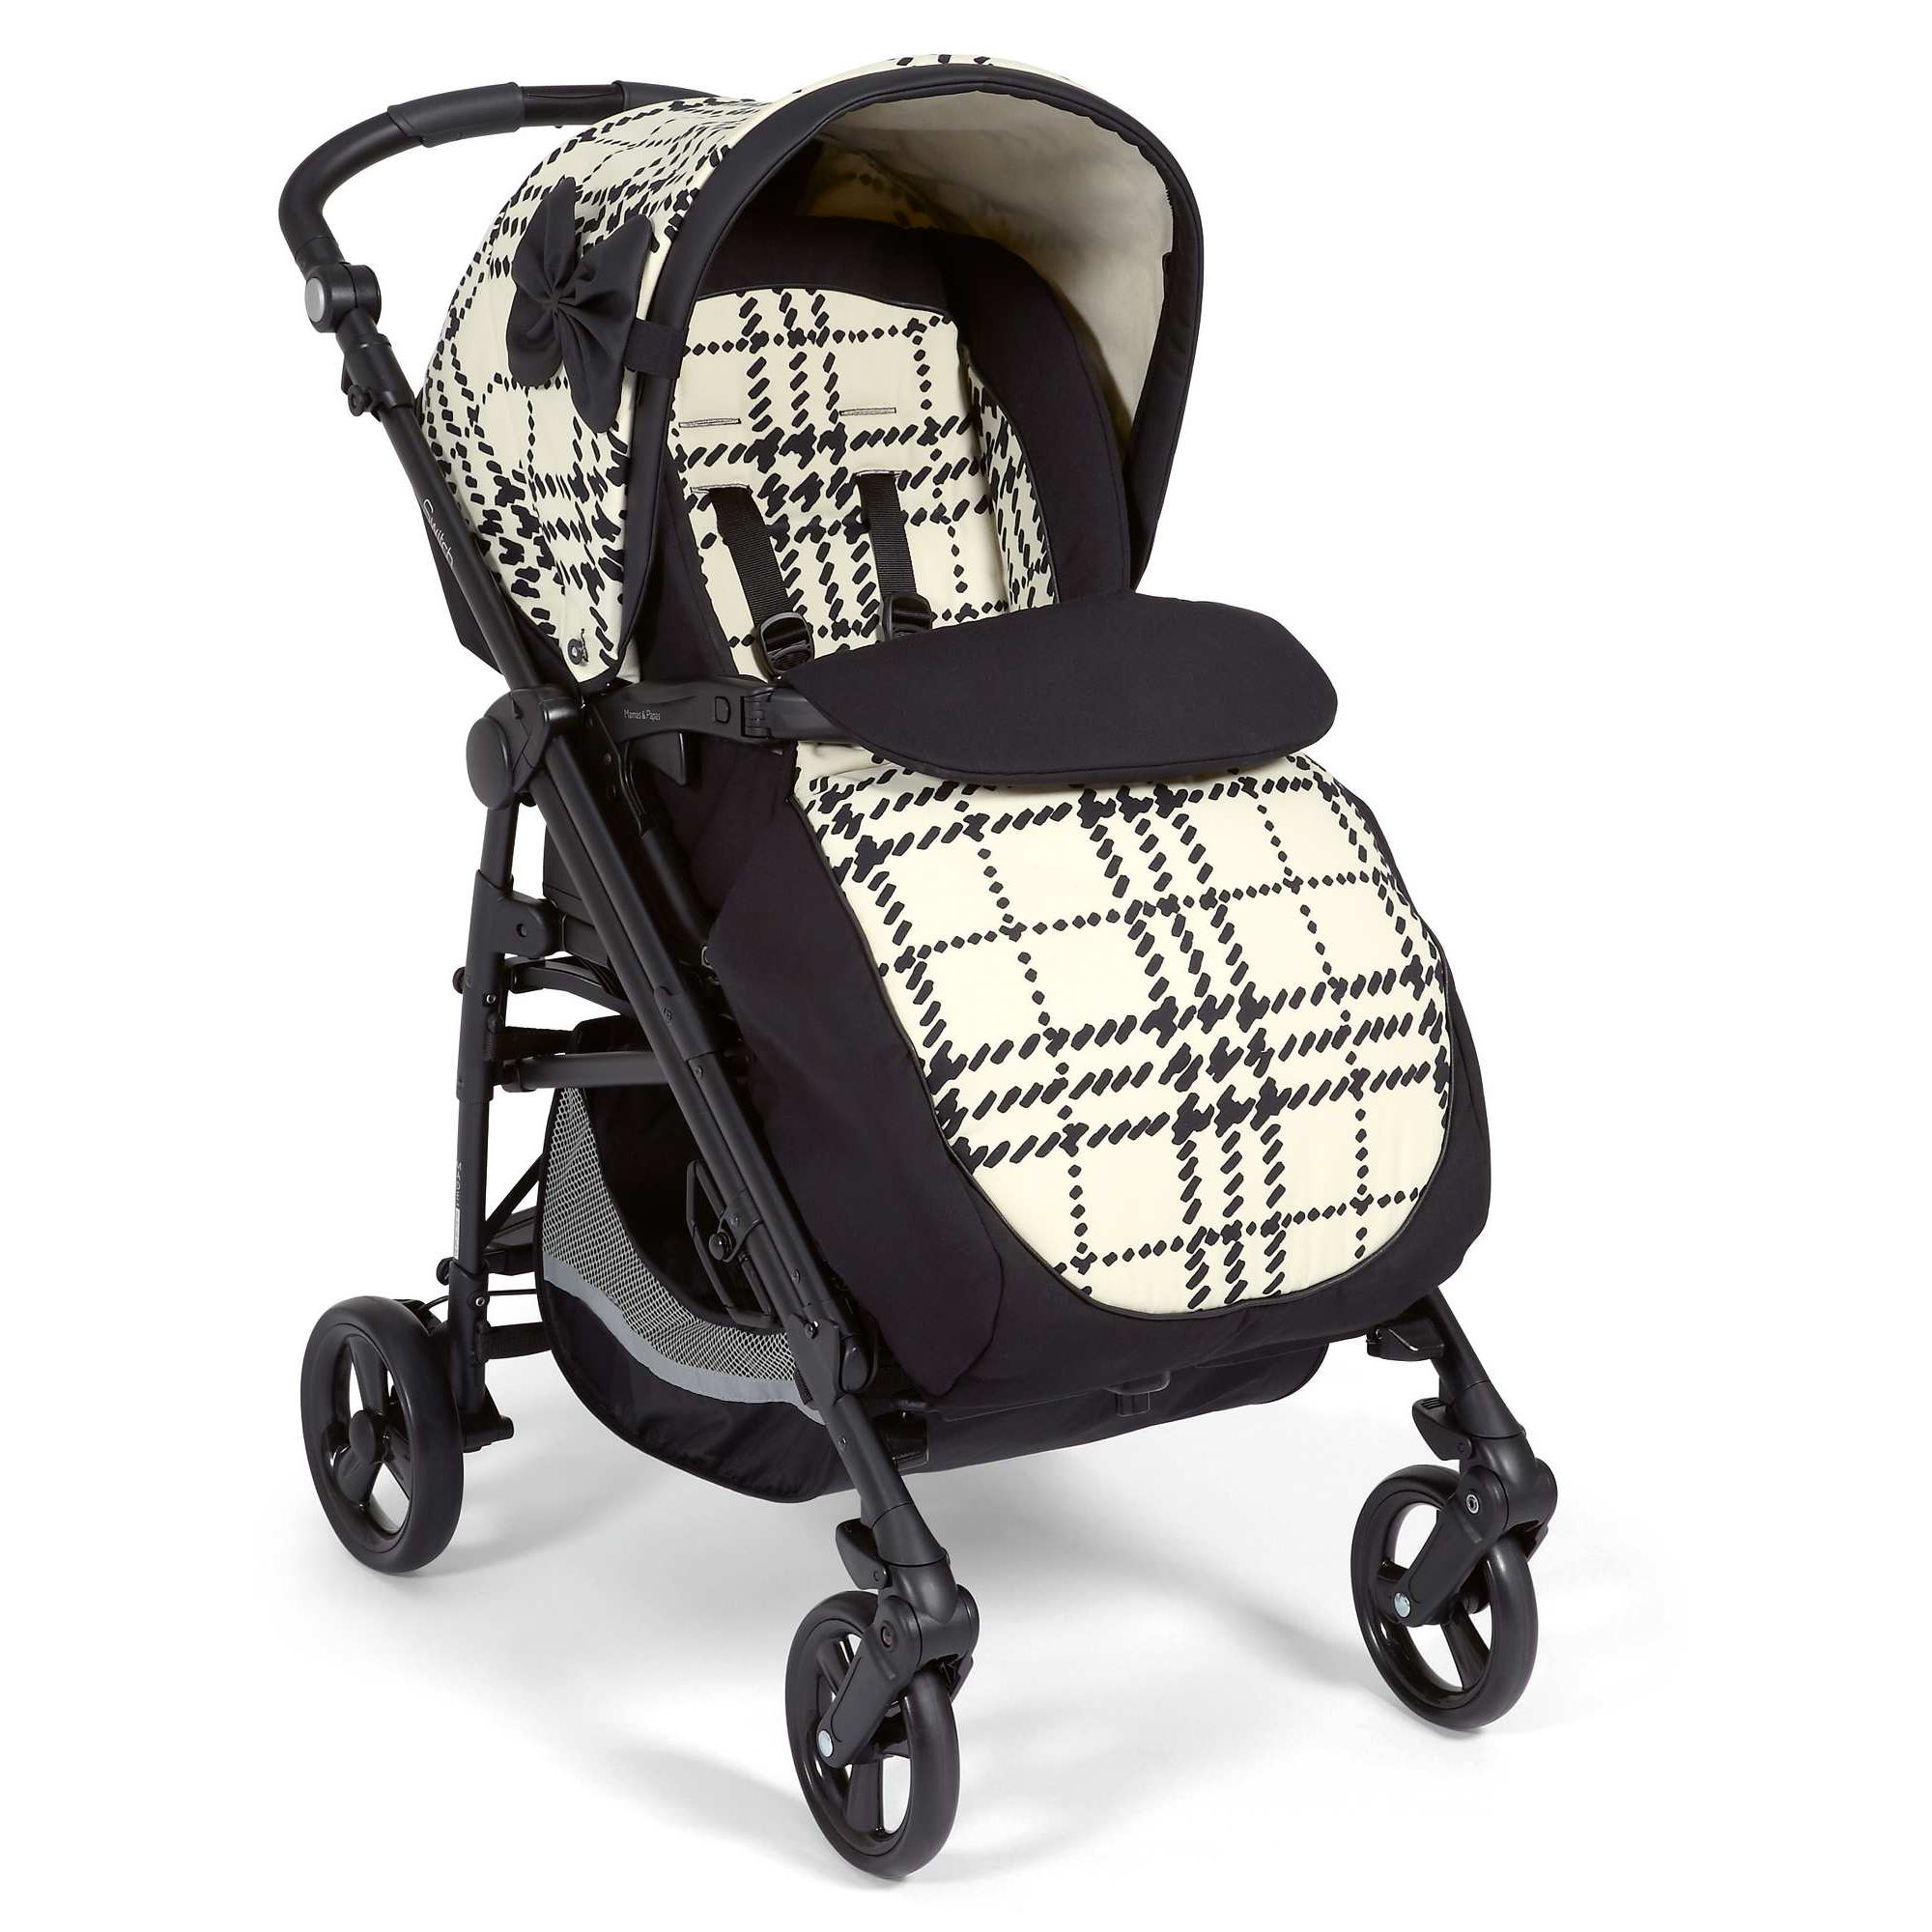 Mamas & Papas - Switch Pushchair - Harper Check at Tesco Direct